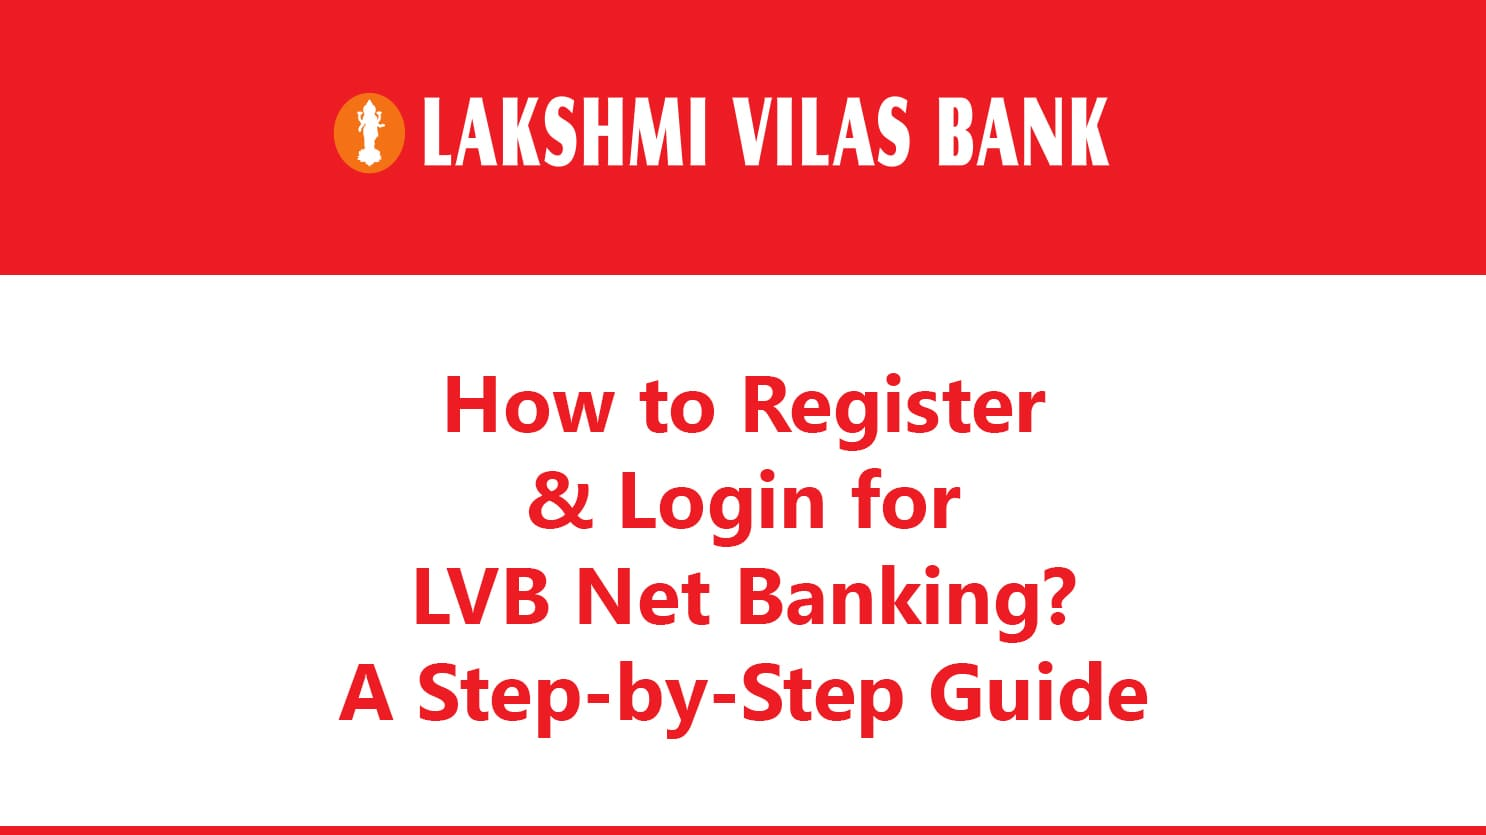 How to Register & Login for LVB Net Banking? : A Step-by-Step Guide 3